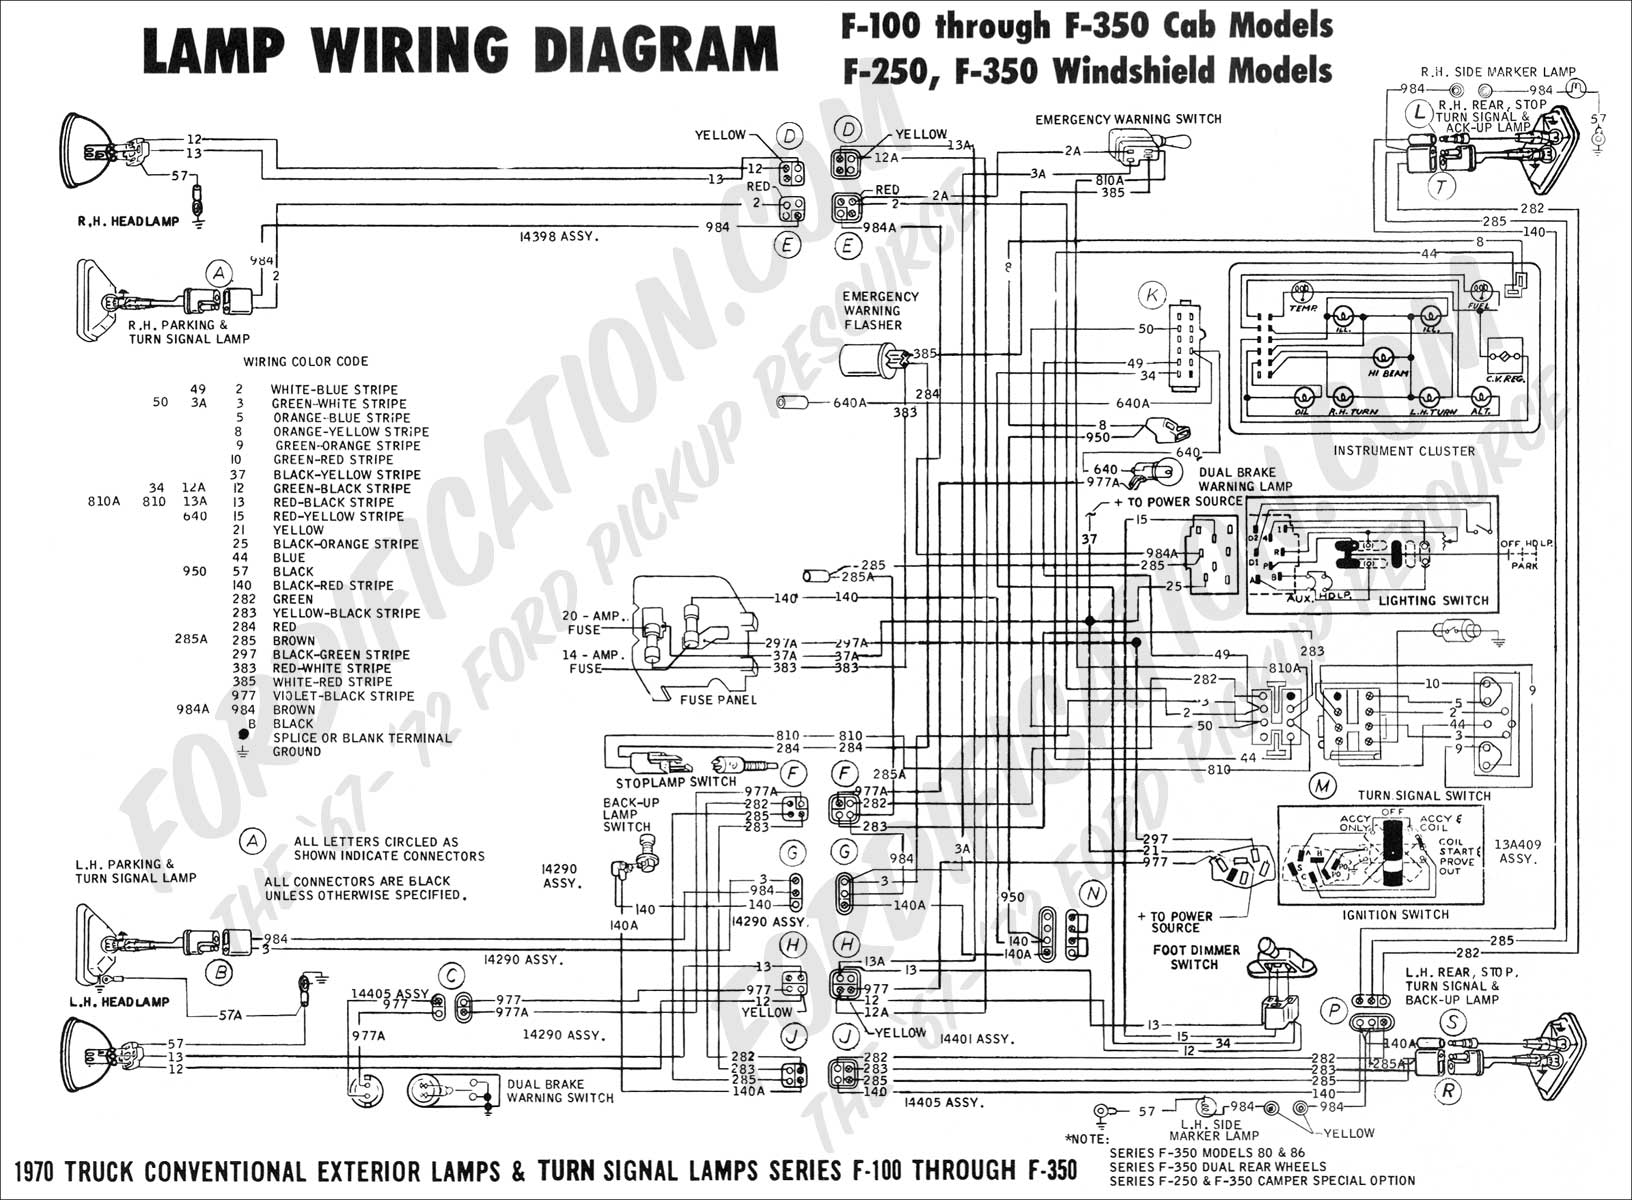 wiring diagram_70ext lights01 1986 ford f250 wiring diagram ford truck fuel system diagram 1997 ford f350 wiring diagram at mifinder.co